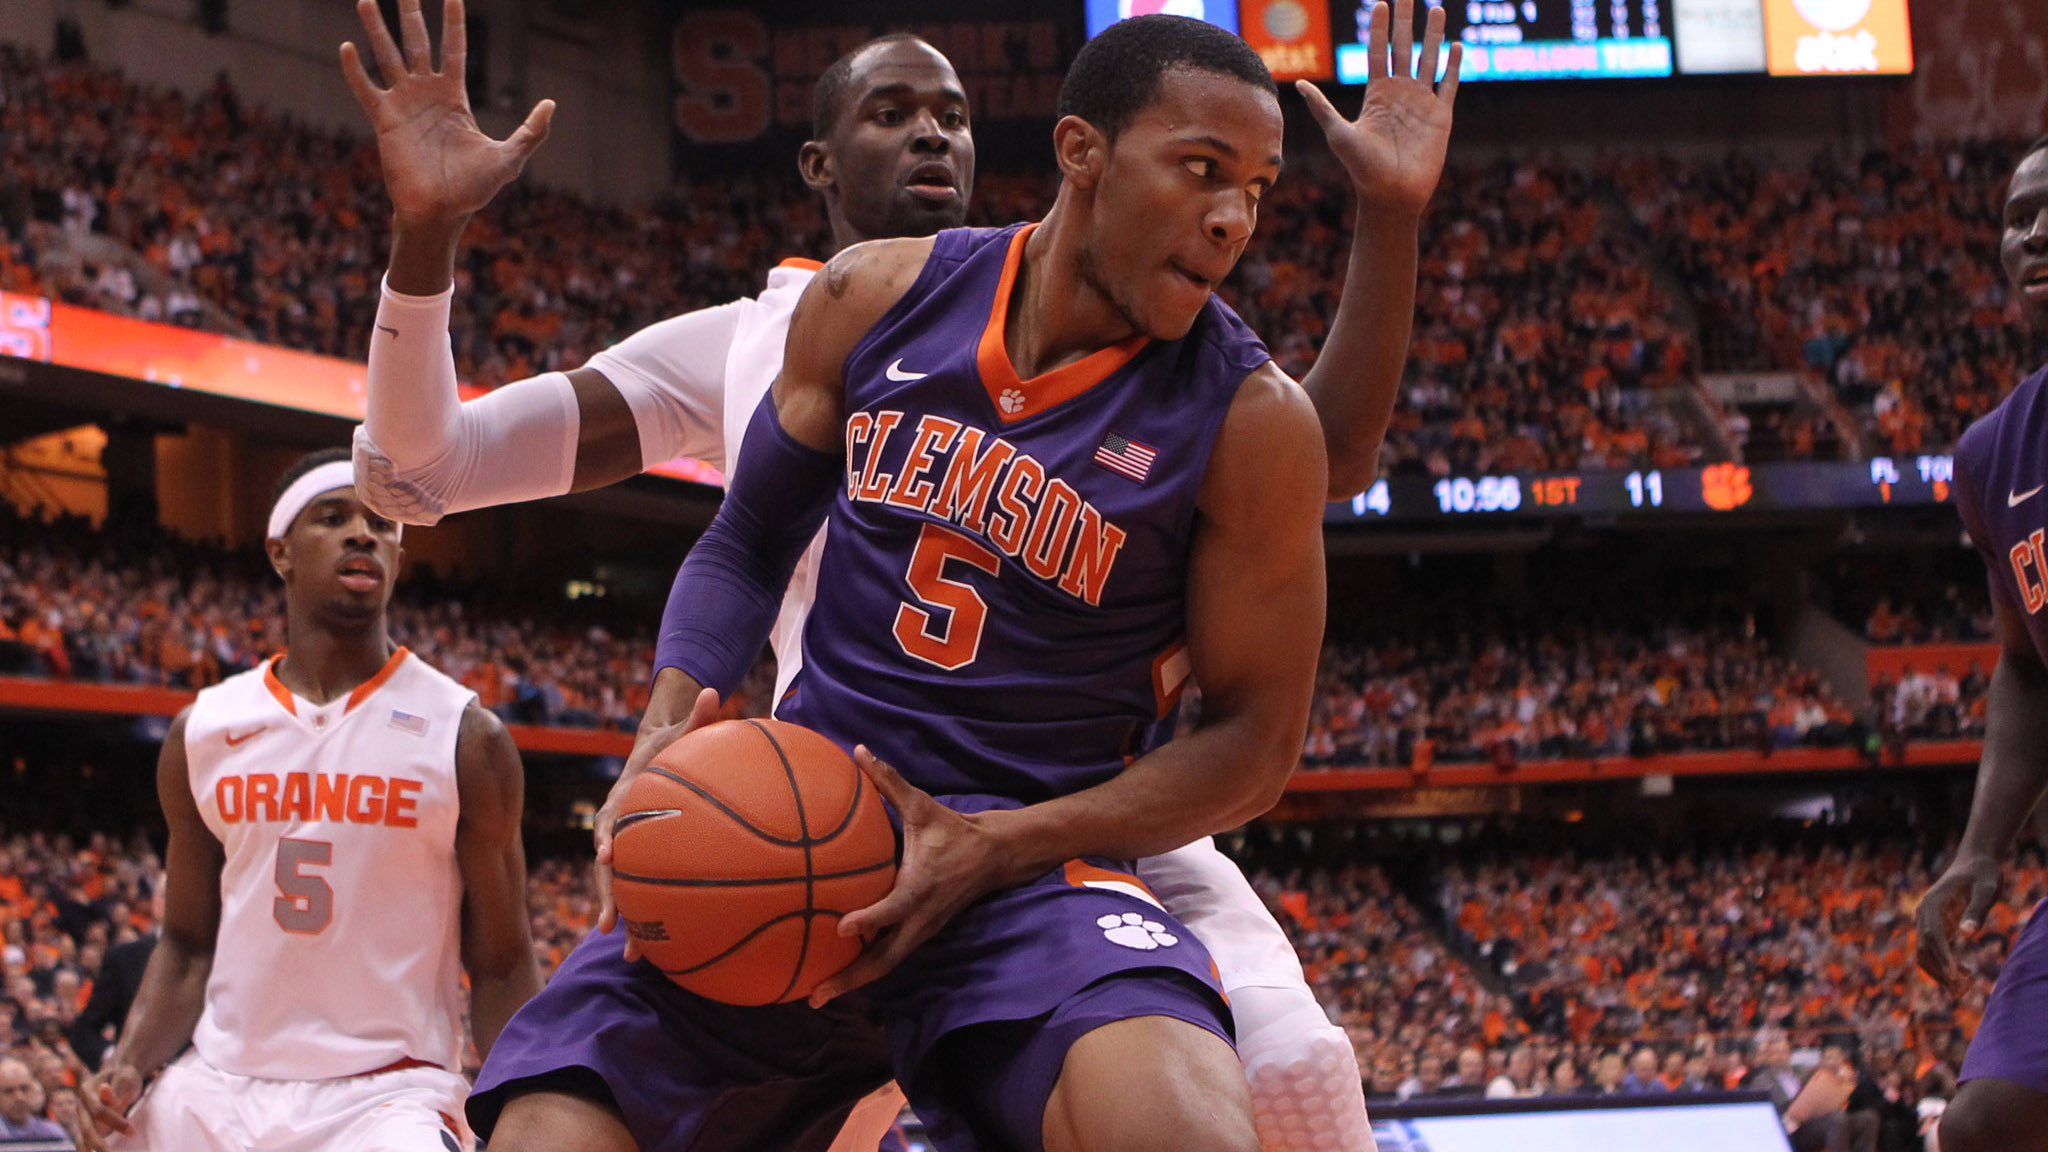 Tigers to Host NC State Tuesday at 7 PM